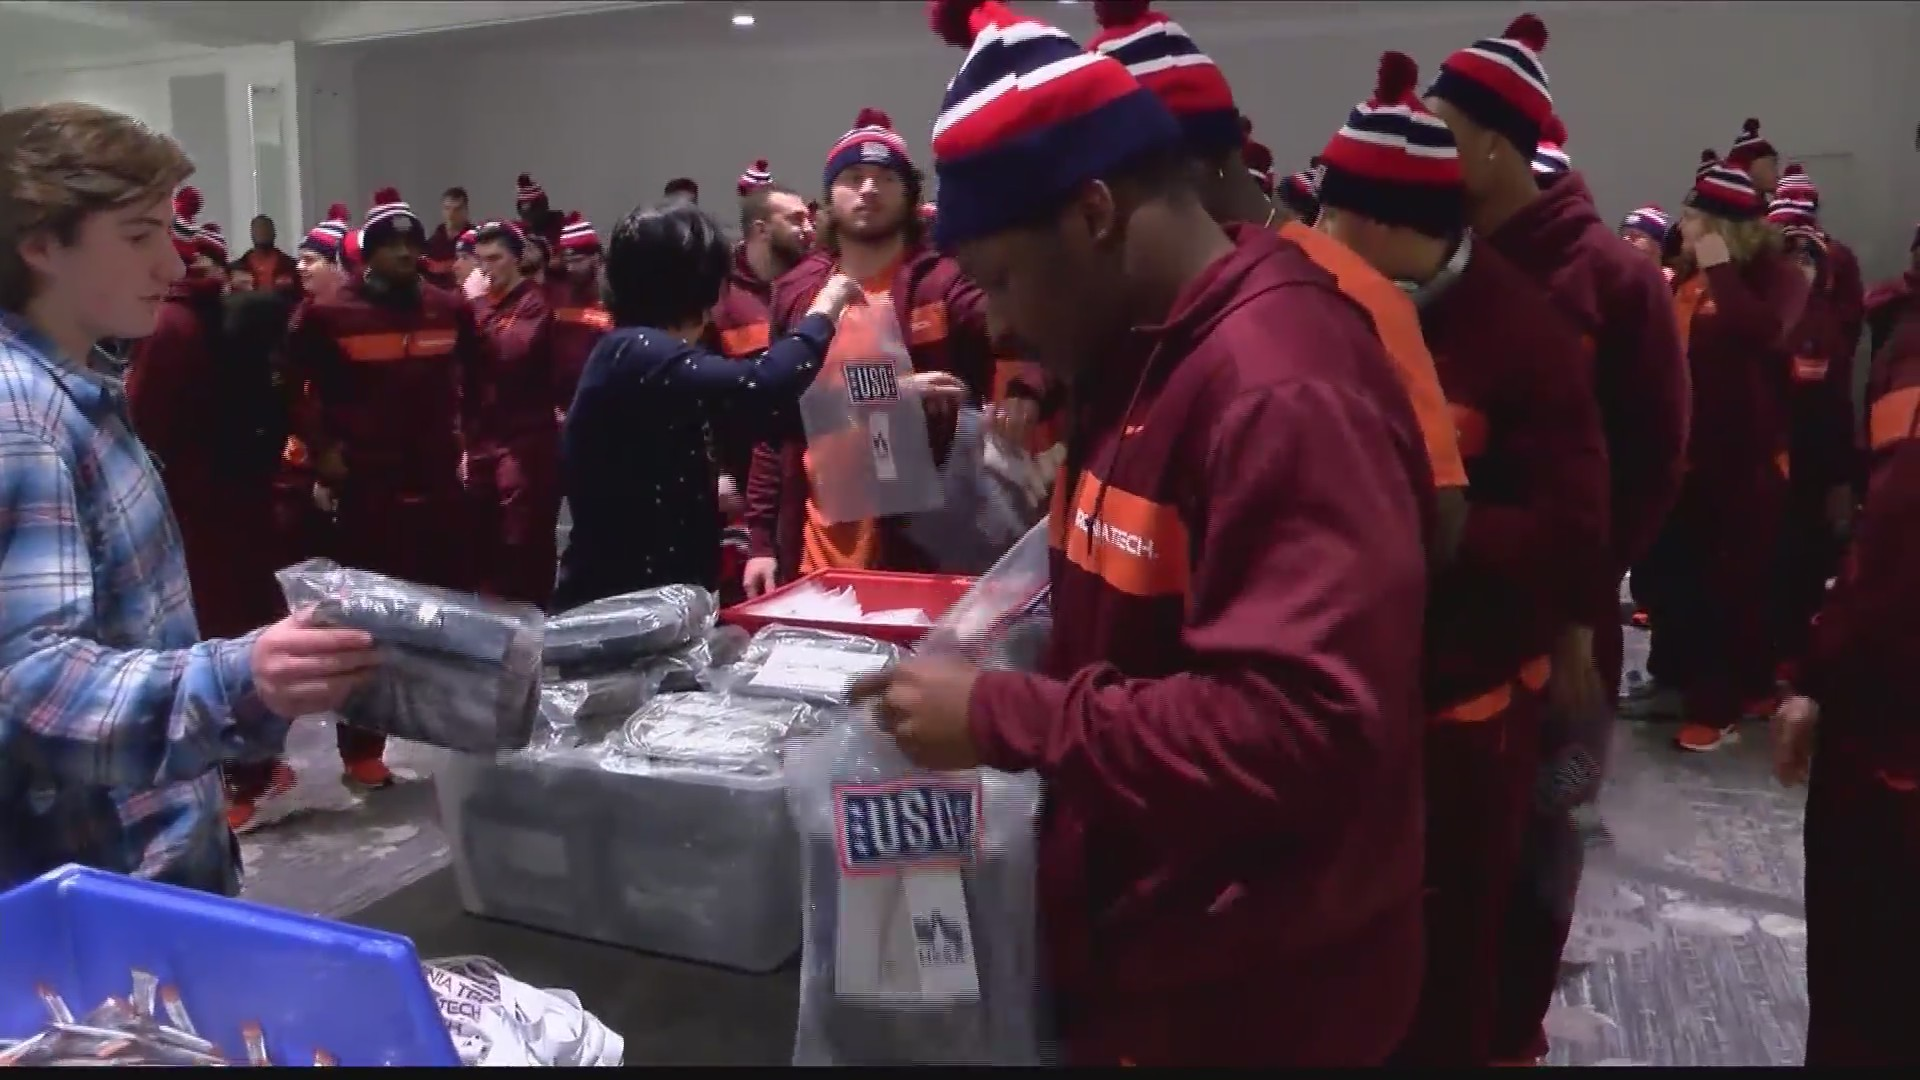 VT AND USO TEAM UP TO MAKE CARE PACKAGES